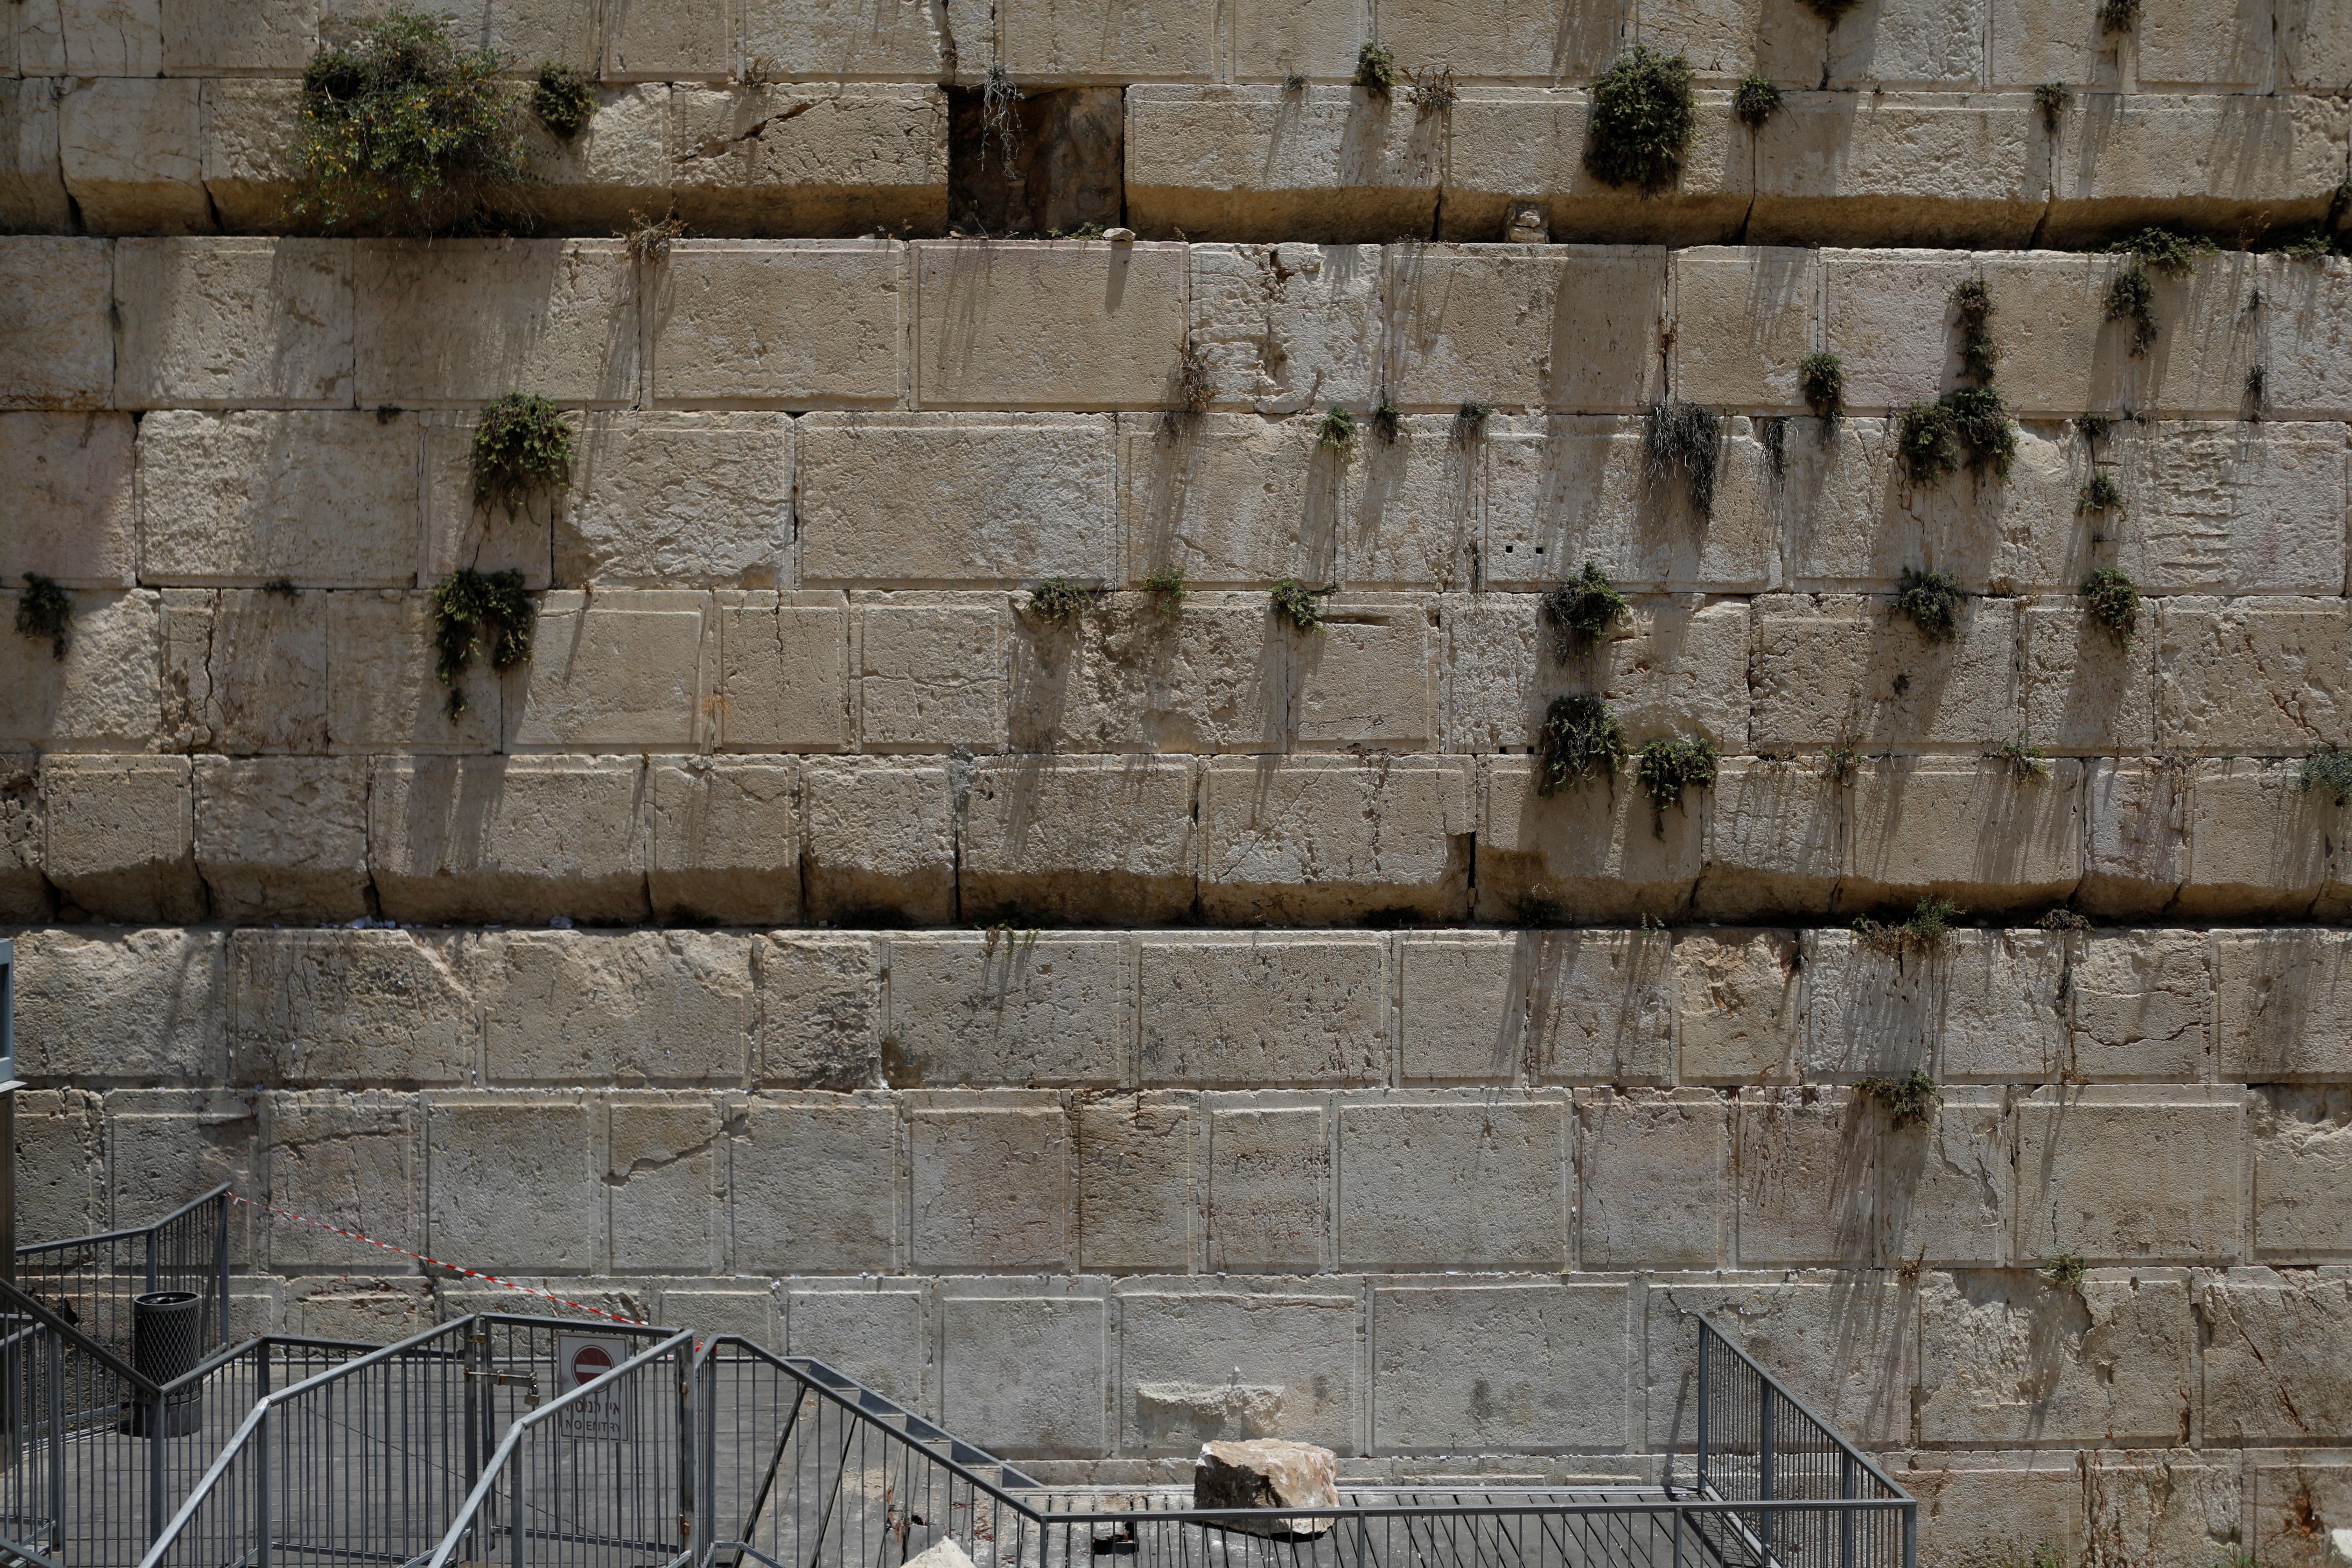 Large boulder breaks off Jerusalem's Western Wall, nearly hits worshipper